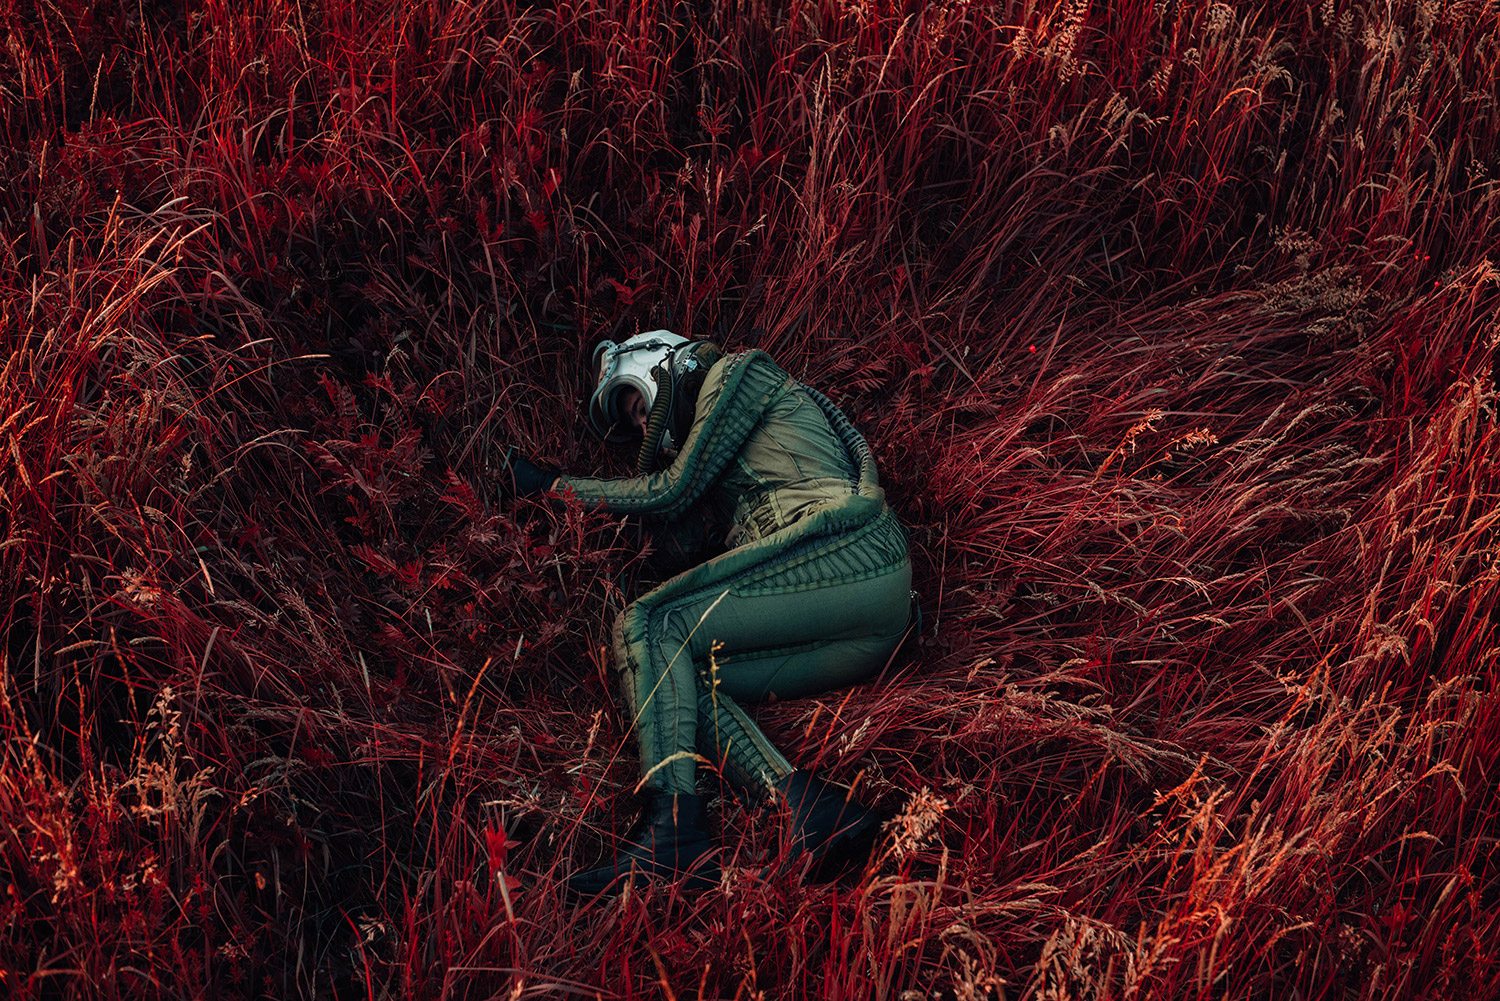 David Schermann, Bigger than Us - lying in red grass